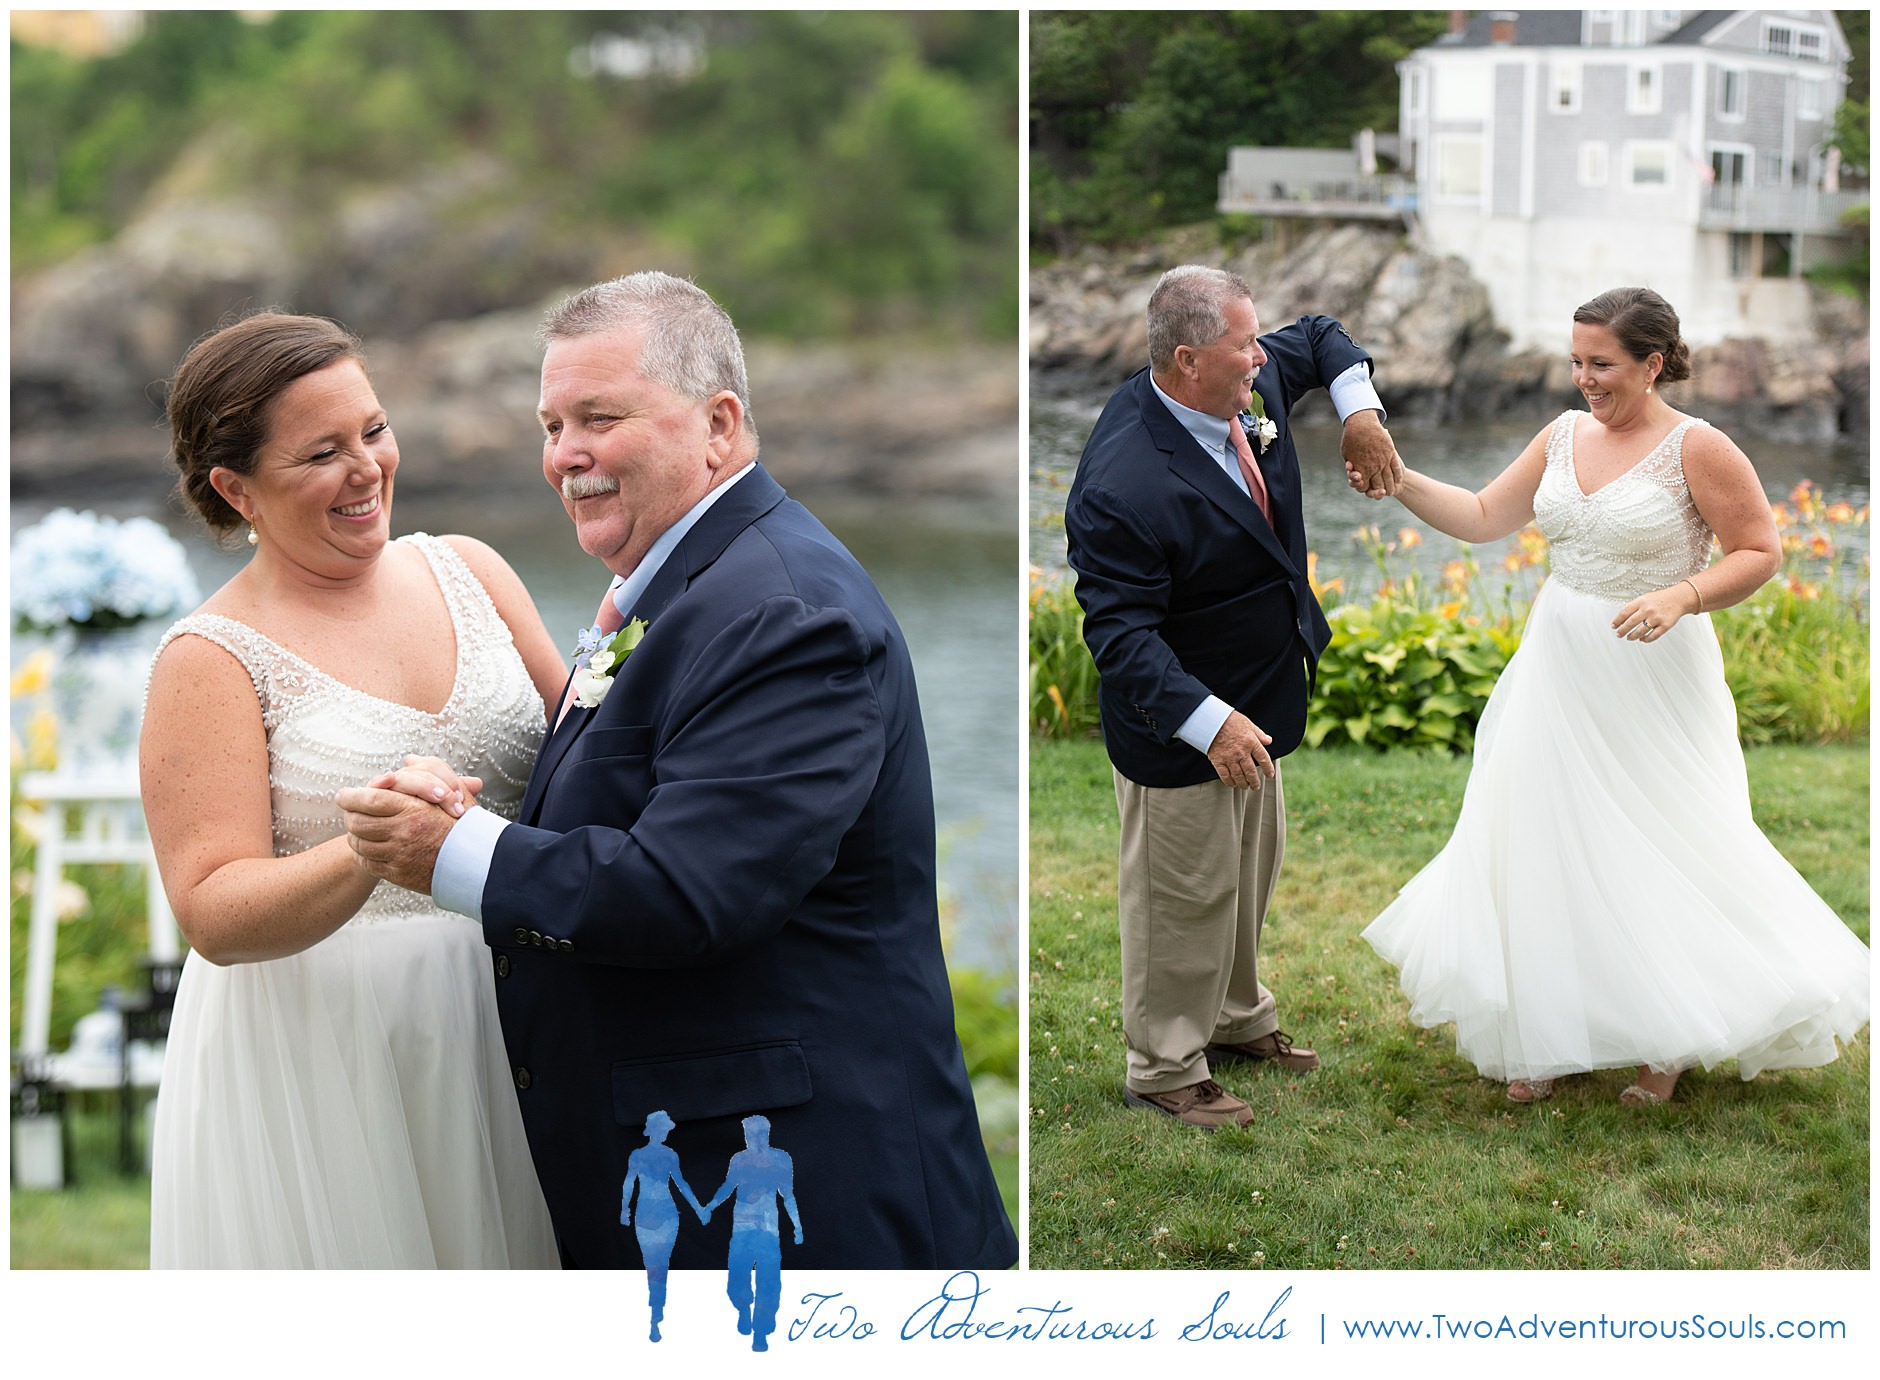 Maine Wedding Photographers, Ogunquit Wedding Photographers, Maine Elopement Photographers, Two Adventurous Souls-080619_0028.jpg